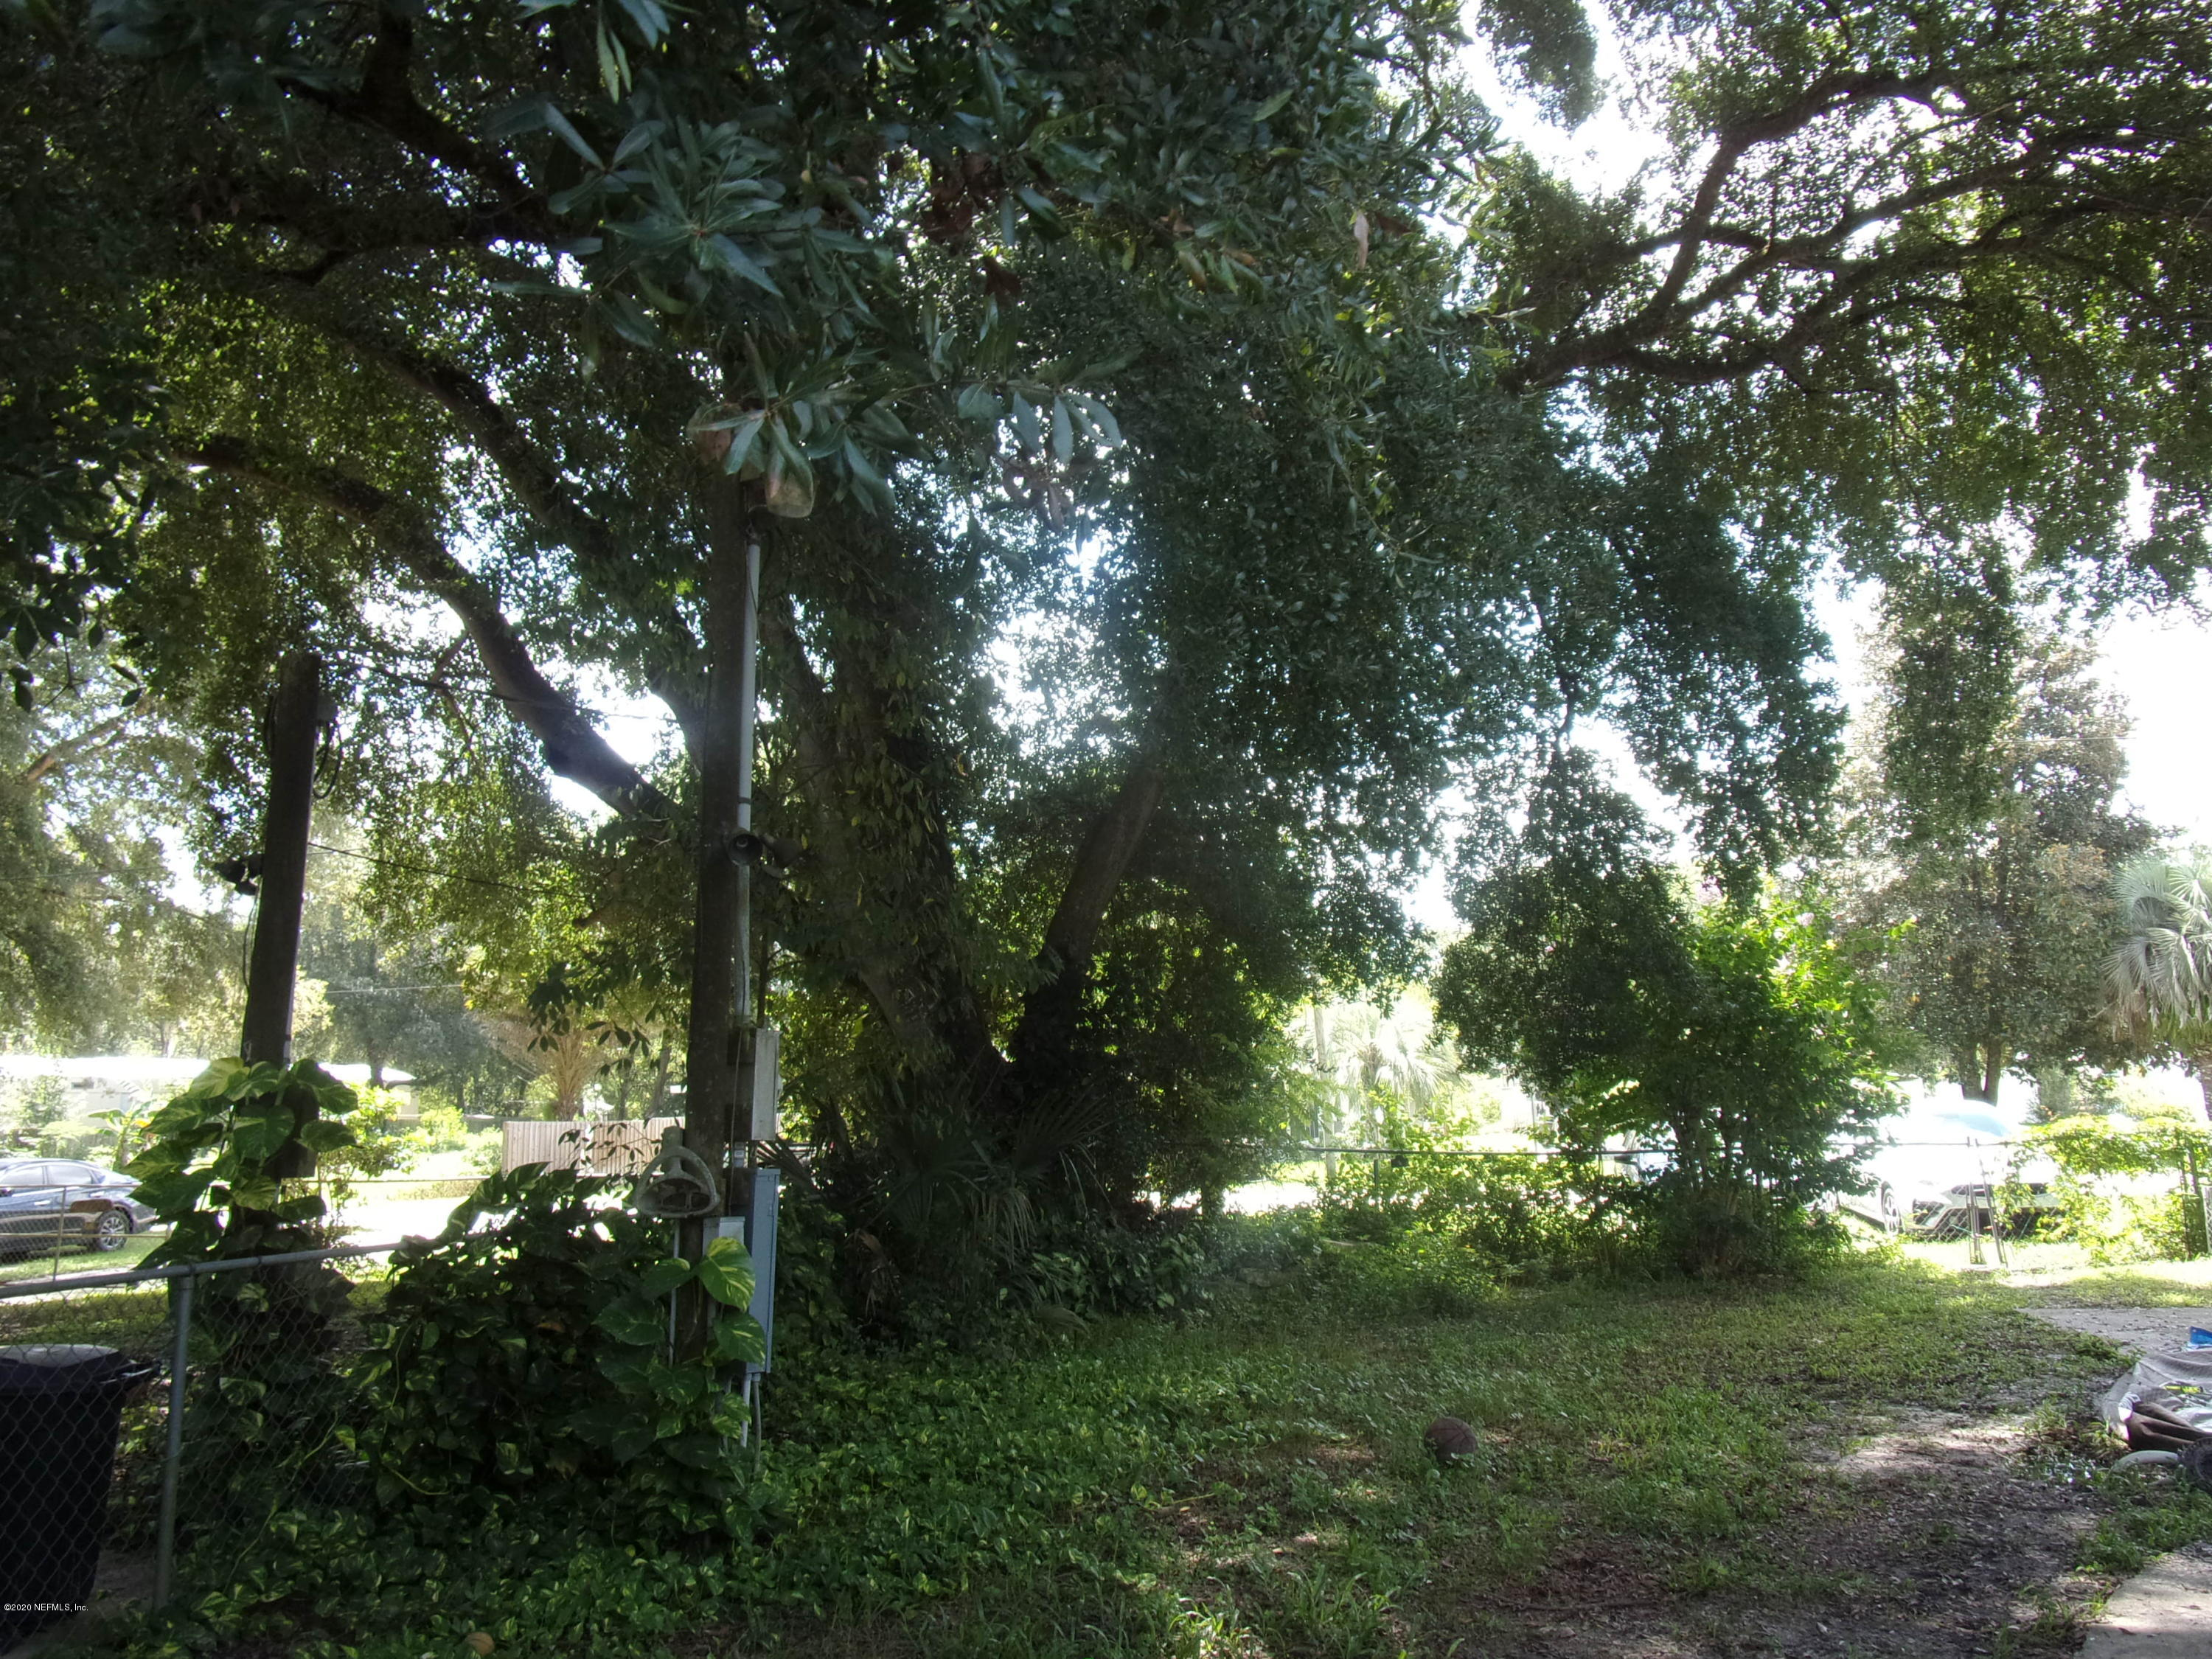 226 CLEARWATER, SATSUMA, FLORIDA 32189, 3 Bedrooms Bedrooms, ,2 BathroomsBathrooms,Residential,For sale,CLEARWATER,1070949